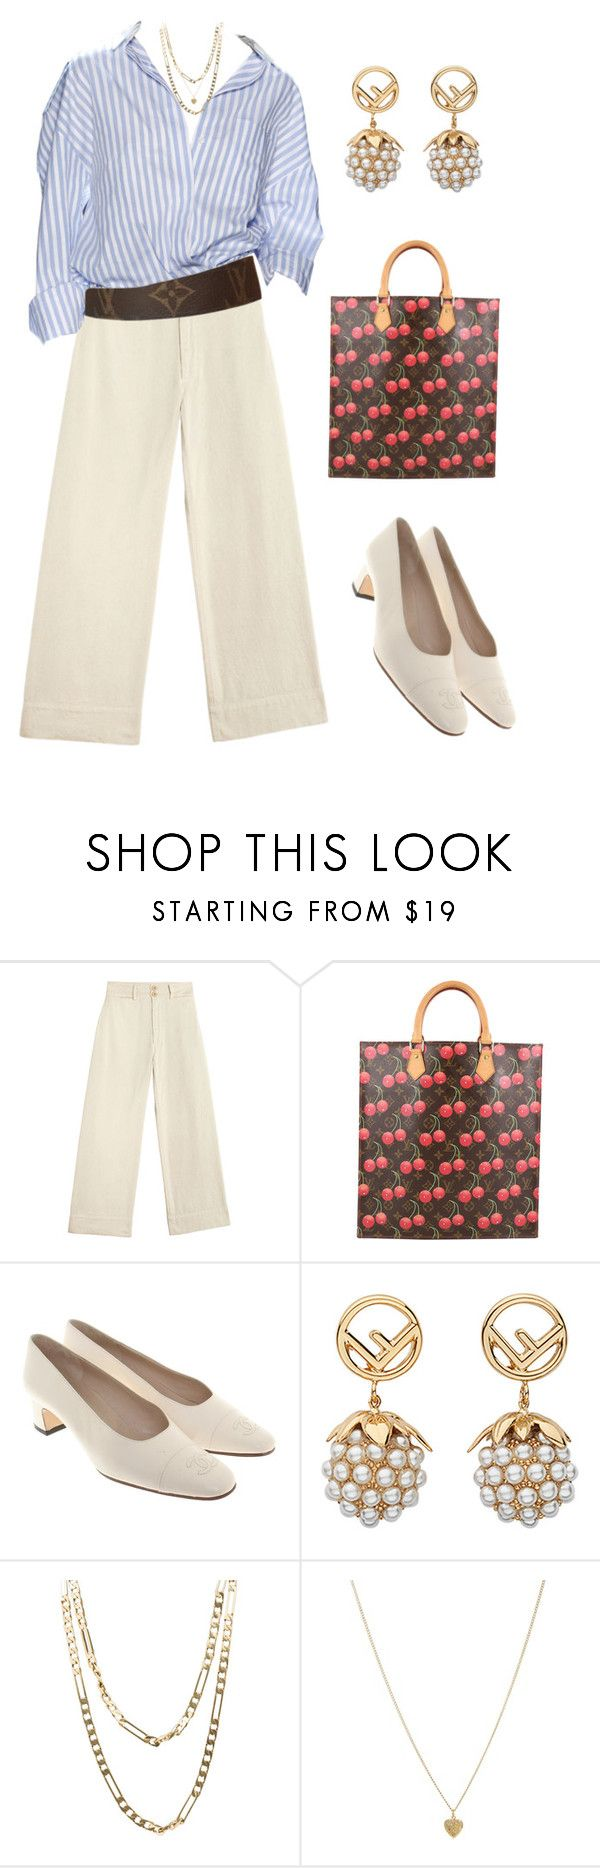 """Untitled #2038"" by lucyshenton ❤ liked on Polyvore featuring Louis Vuitton, Chanel, Fendi, Cartier and Susan Caplan Vintage"